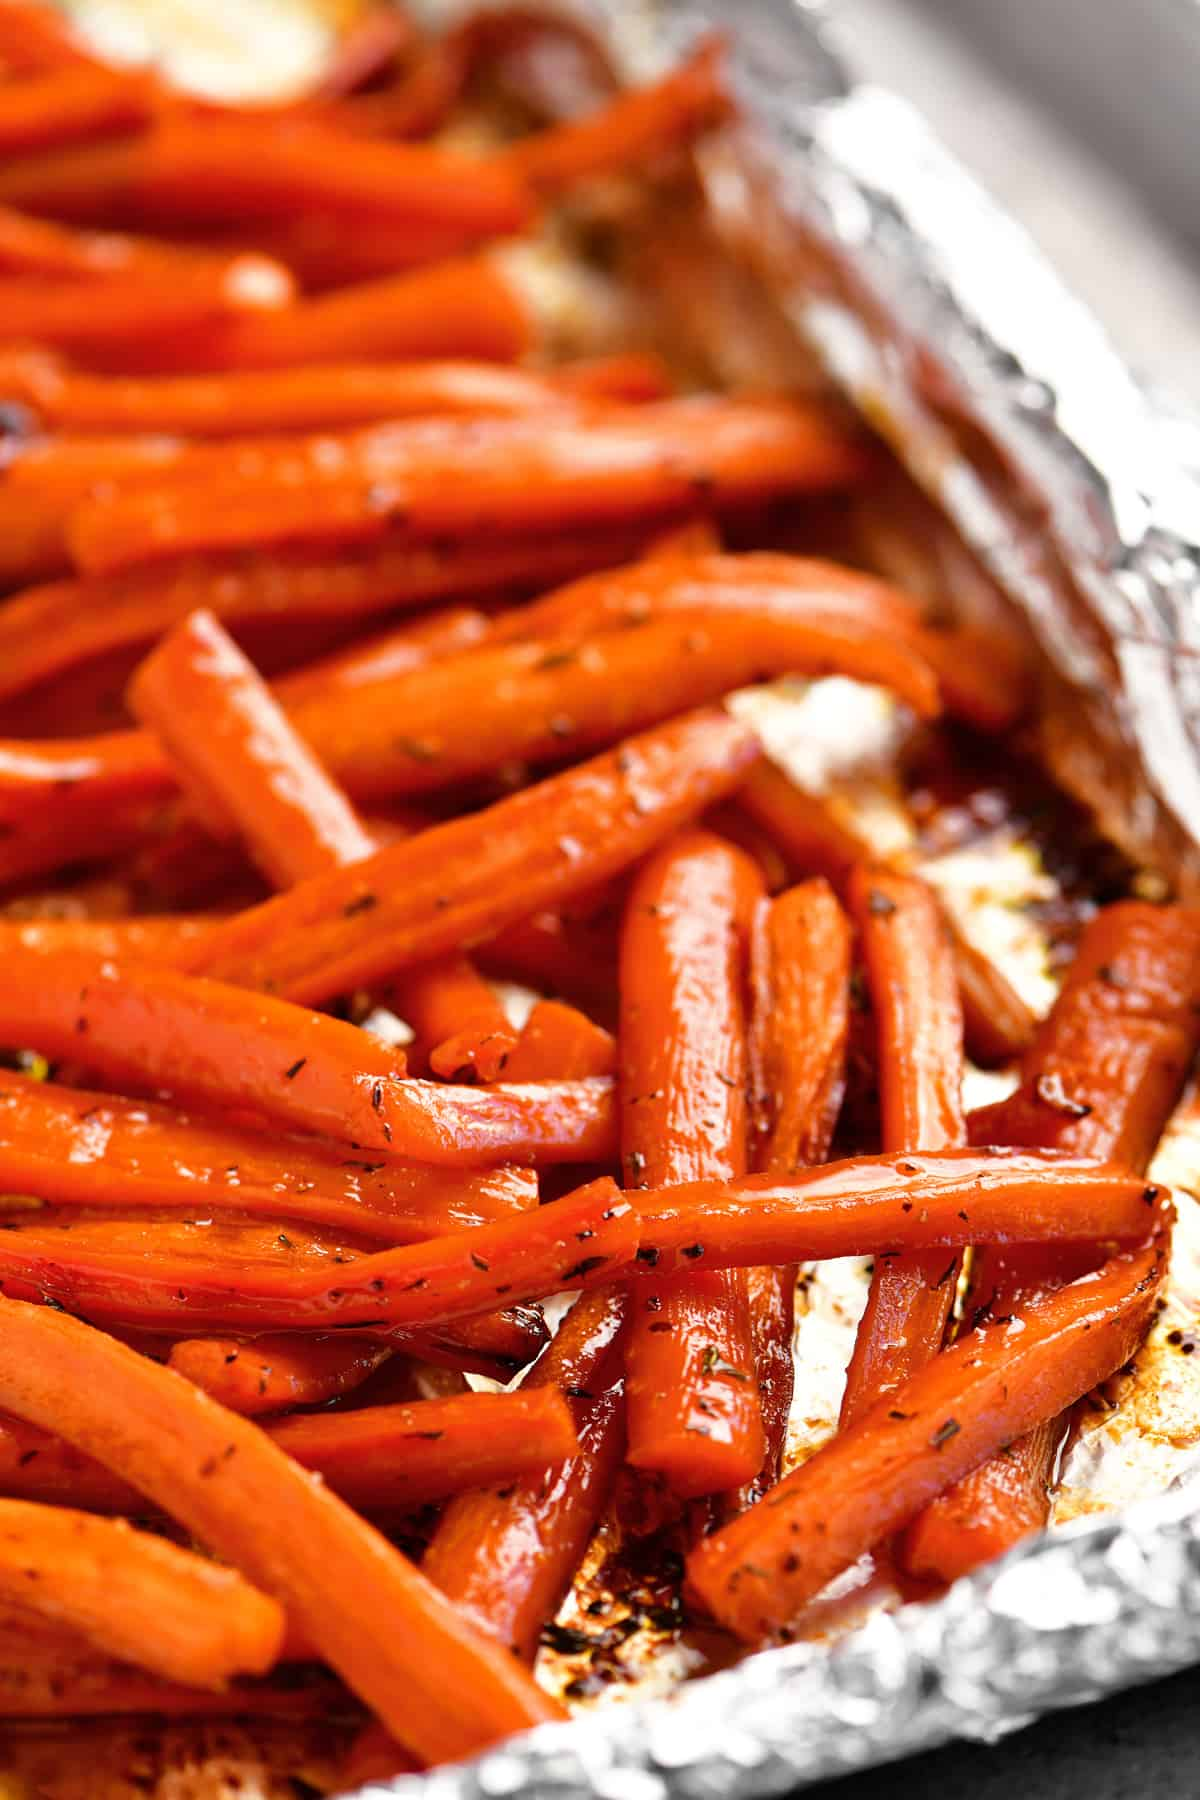 a close-up of the carrots in the pan after cooking